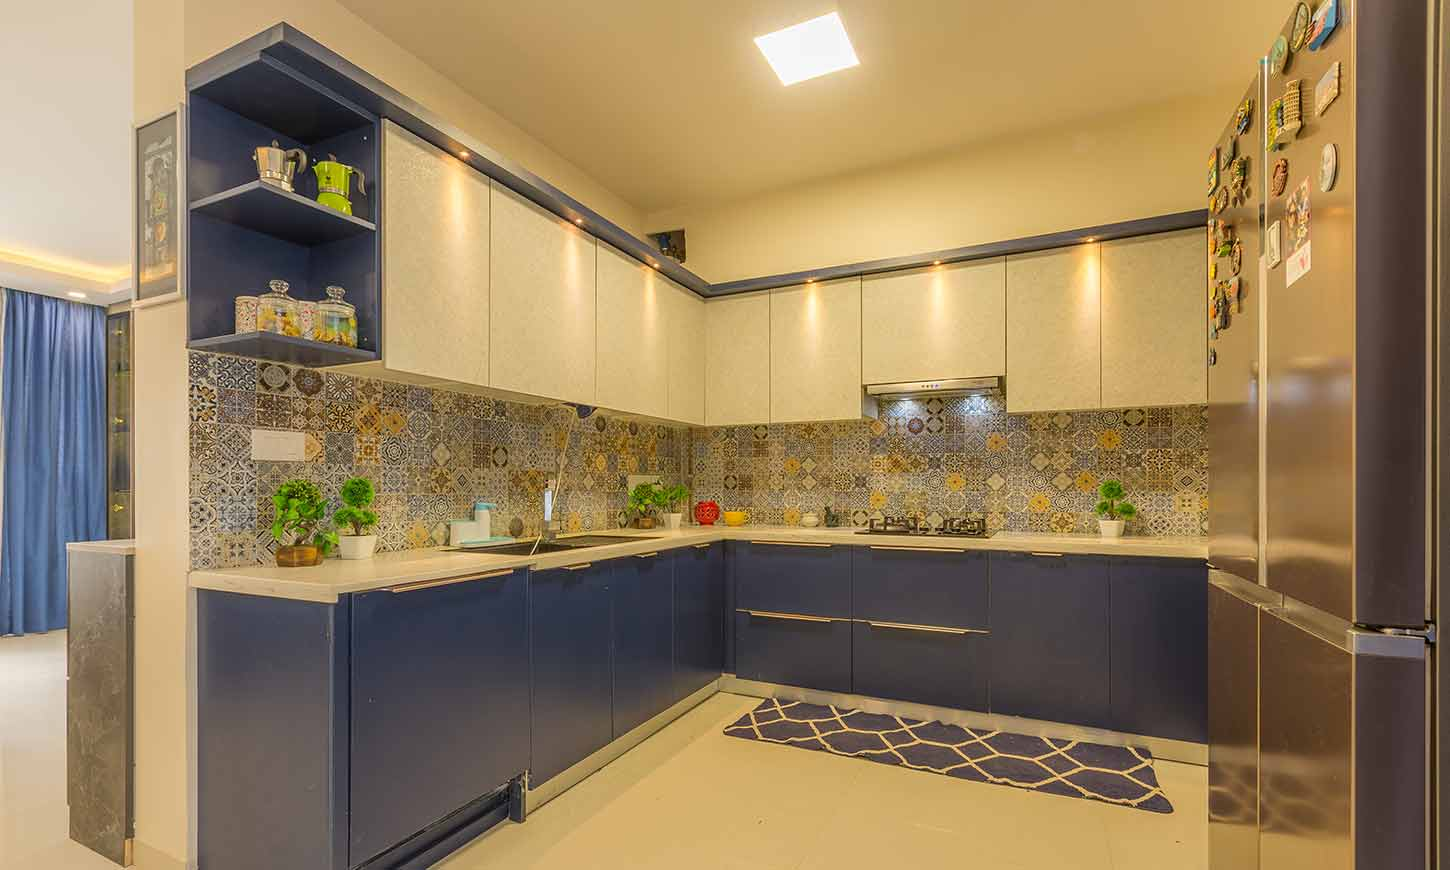 Modular kitchen price in bangalore with a blue and white kitchen designed by design cafe mg road